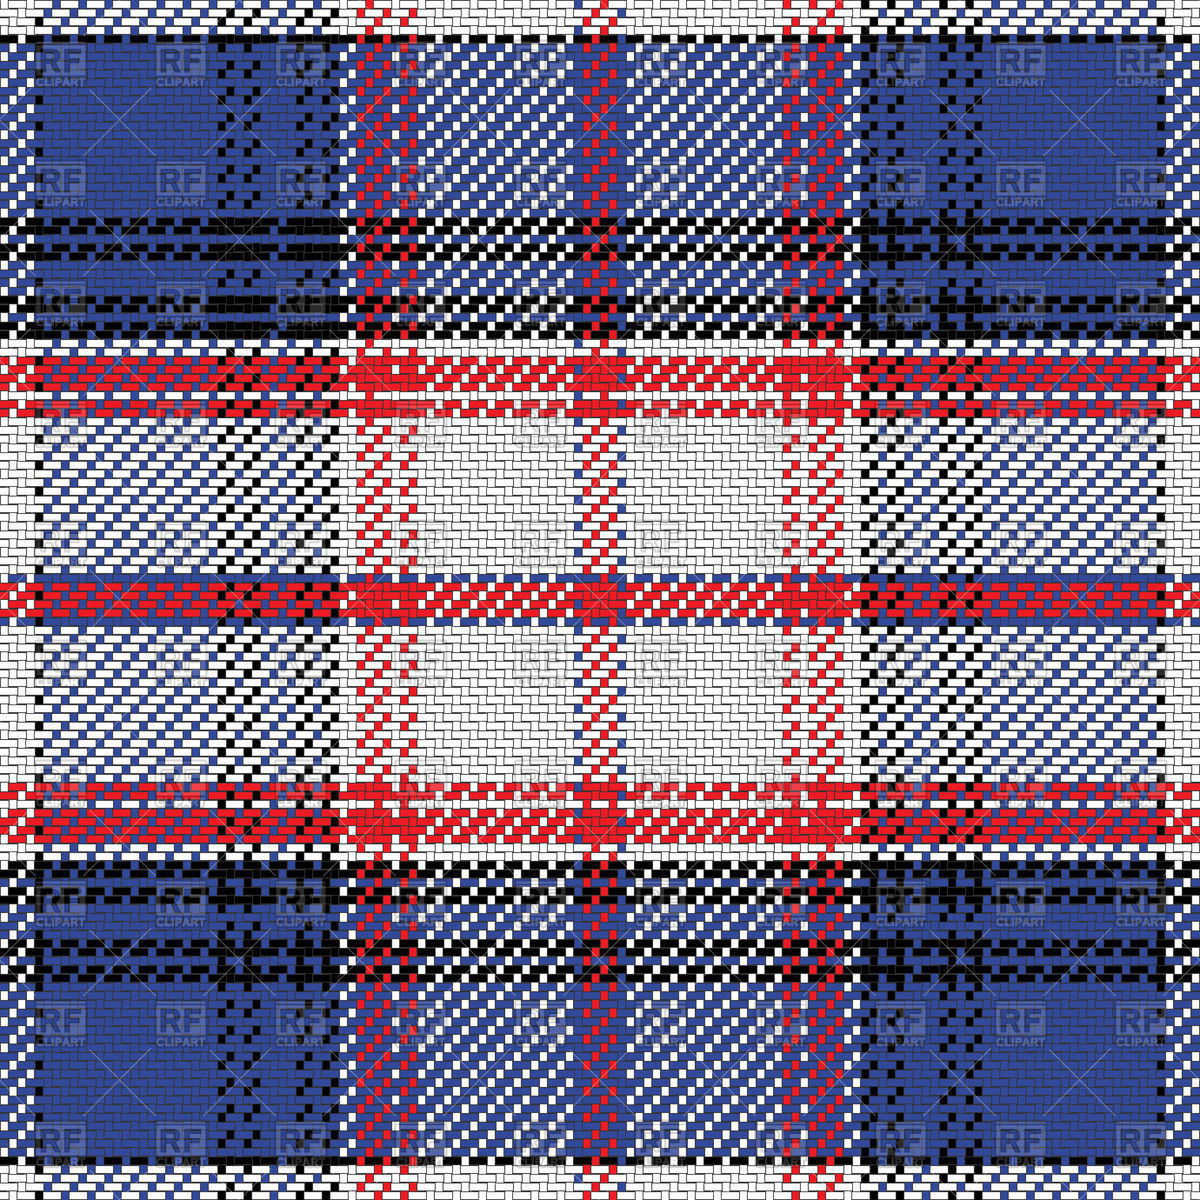 1200x1200 Red And Blue Checkered Plaid Pattern Vector Image Vector Artwork